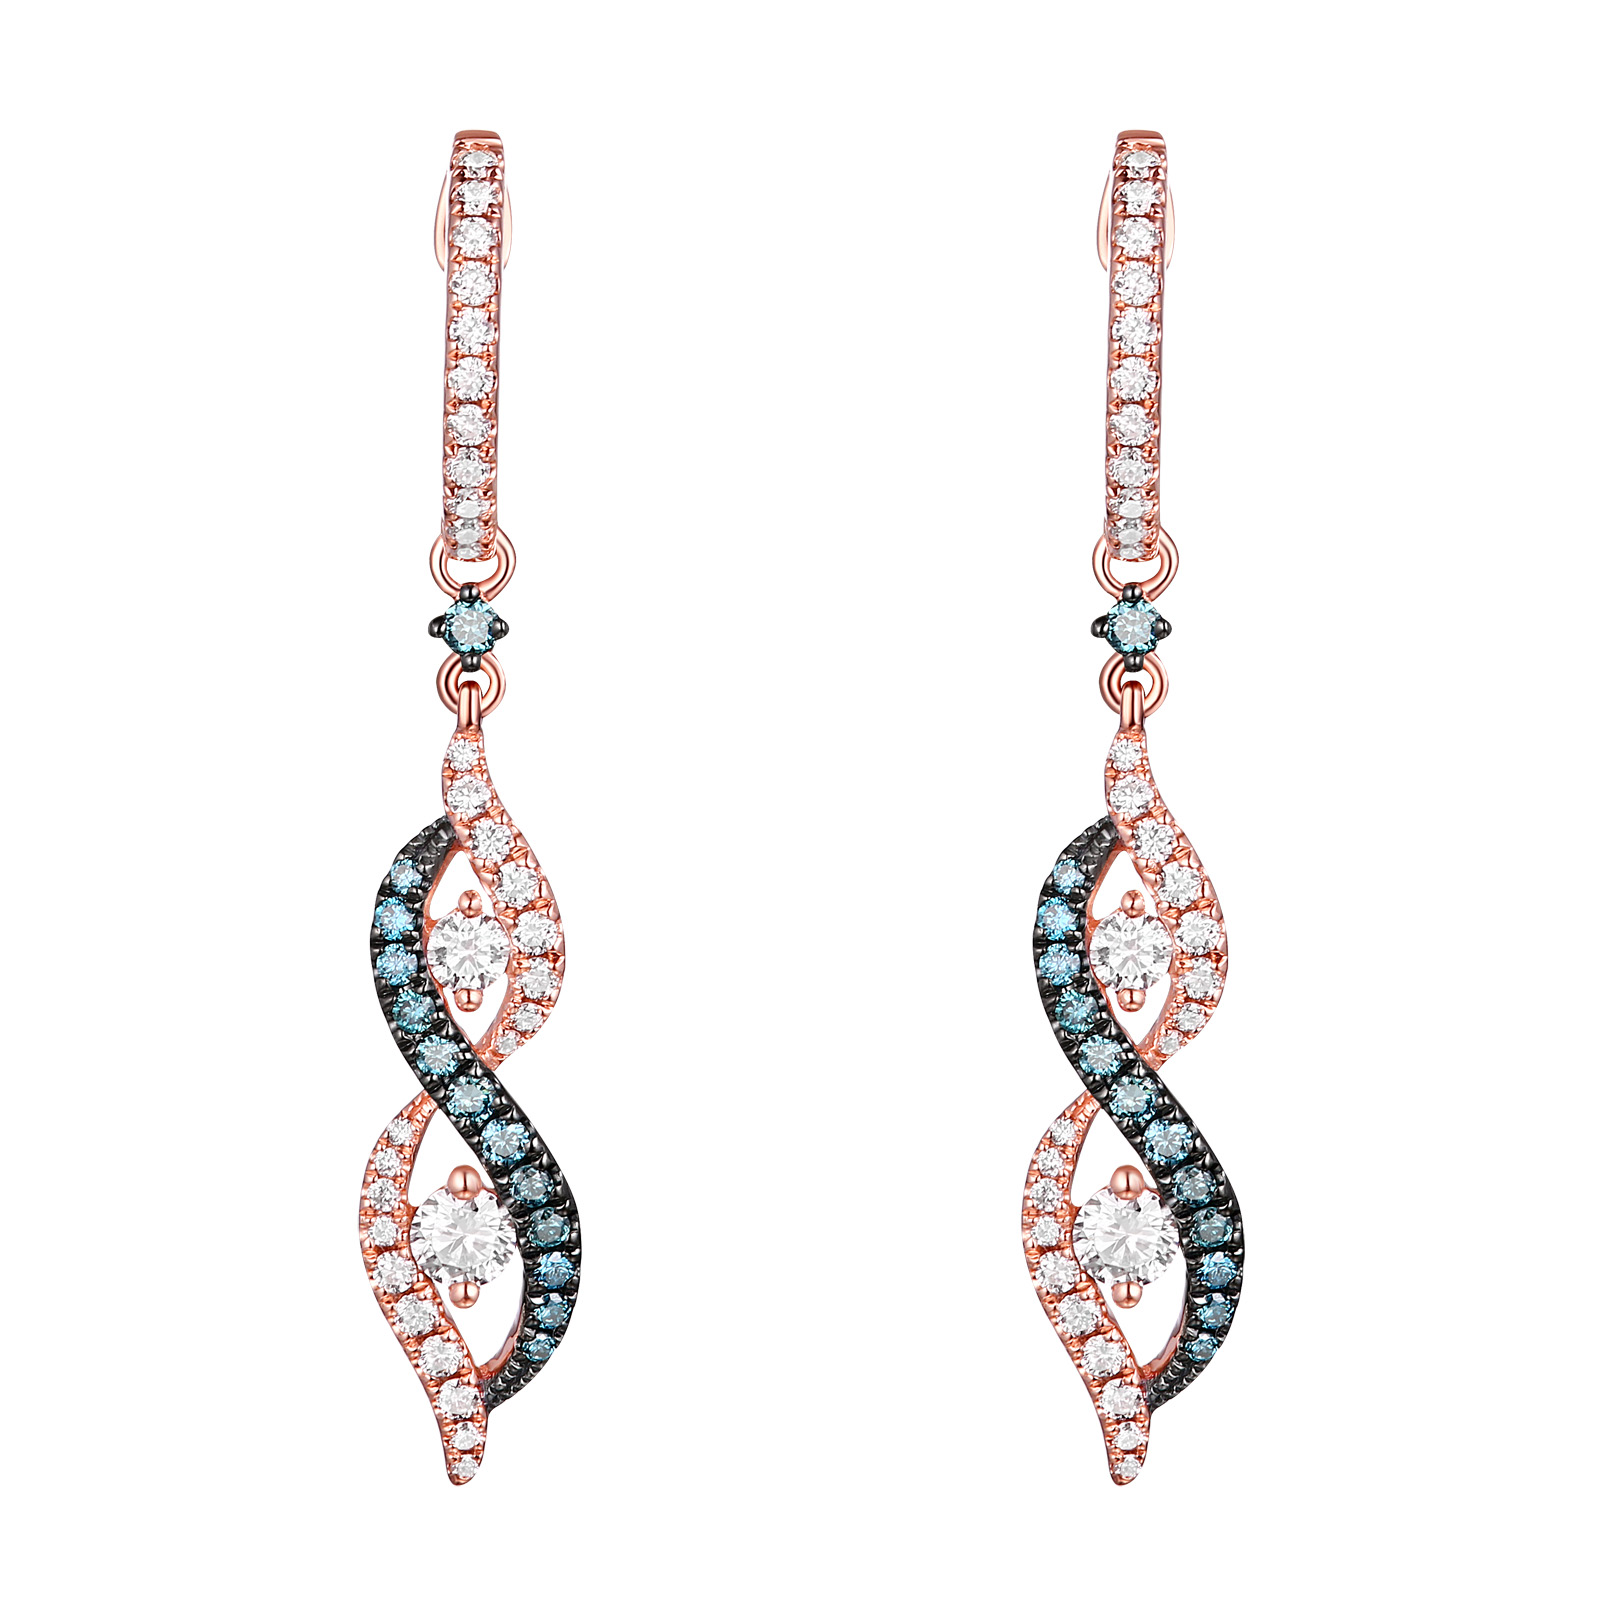 E26226WIC – 14K Rose Gold Diamond Earrings , 0.77 TCW